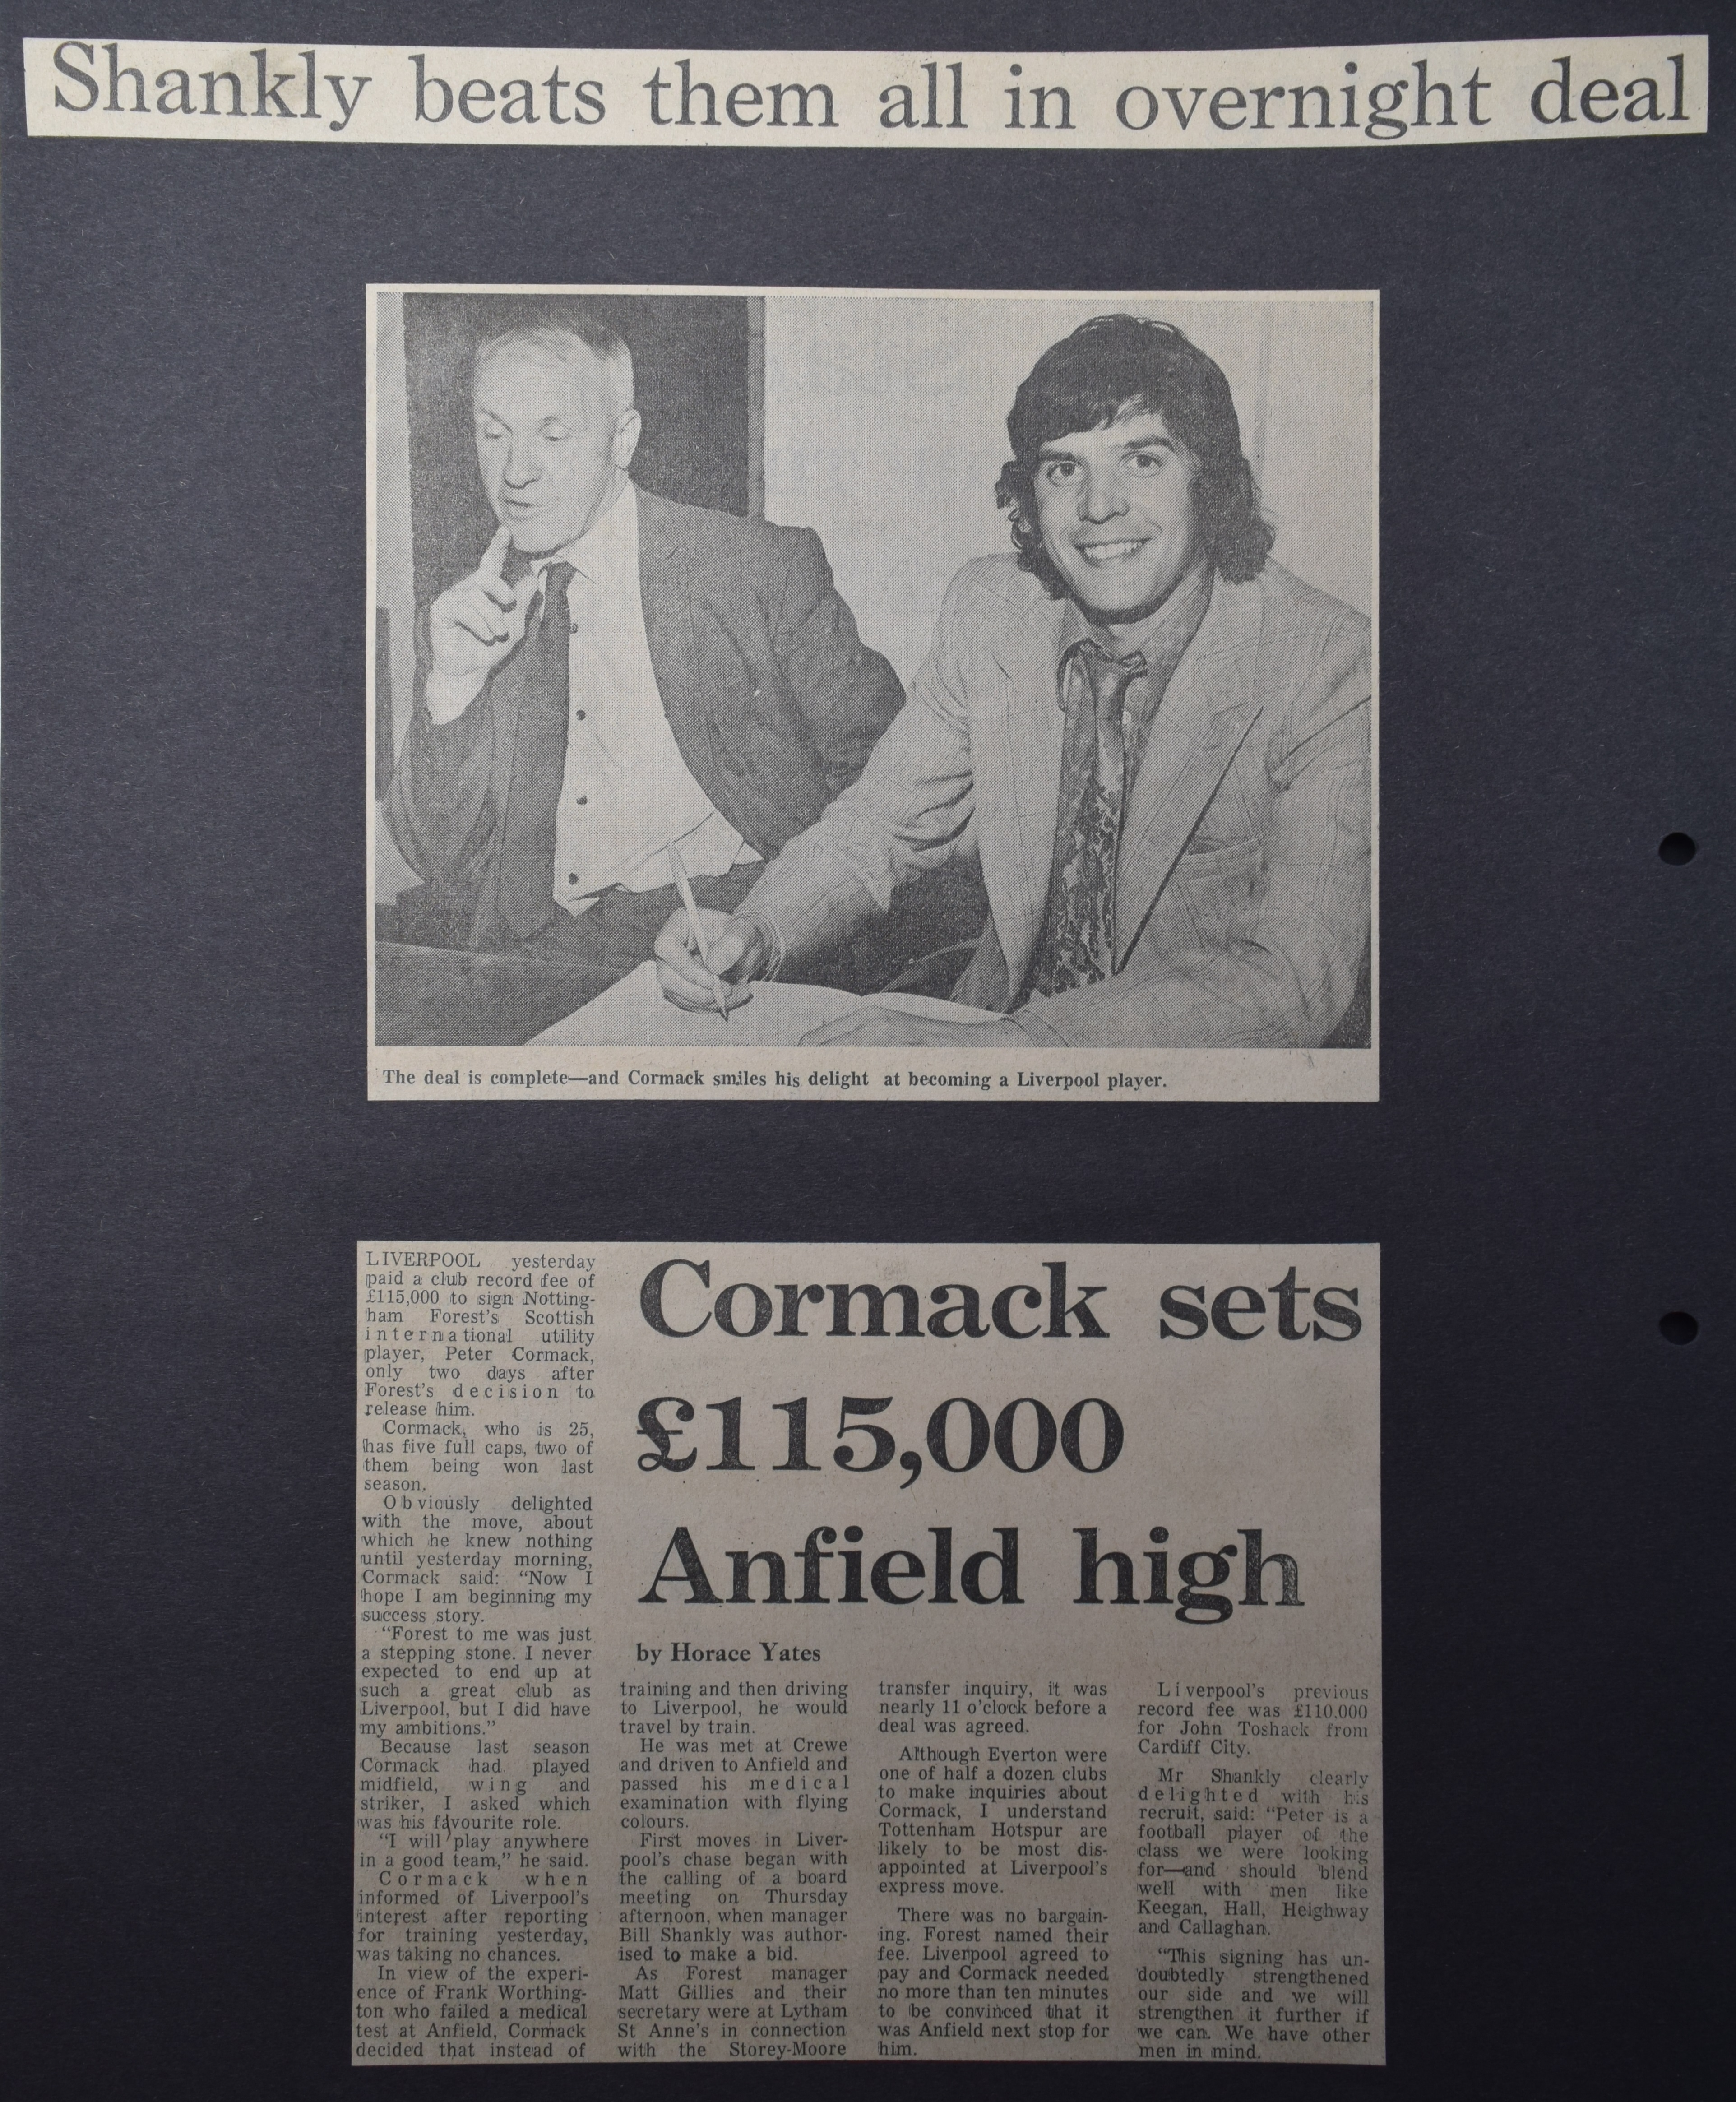 Cormack sets £115,000 Anfield high! - 14 July 1972